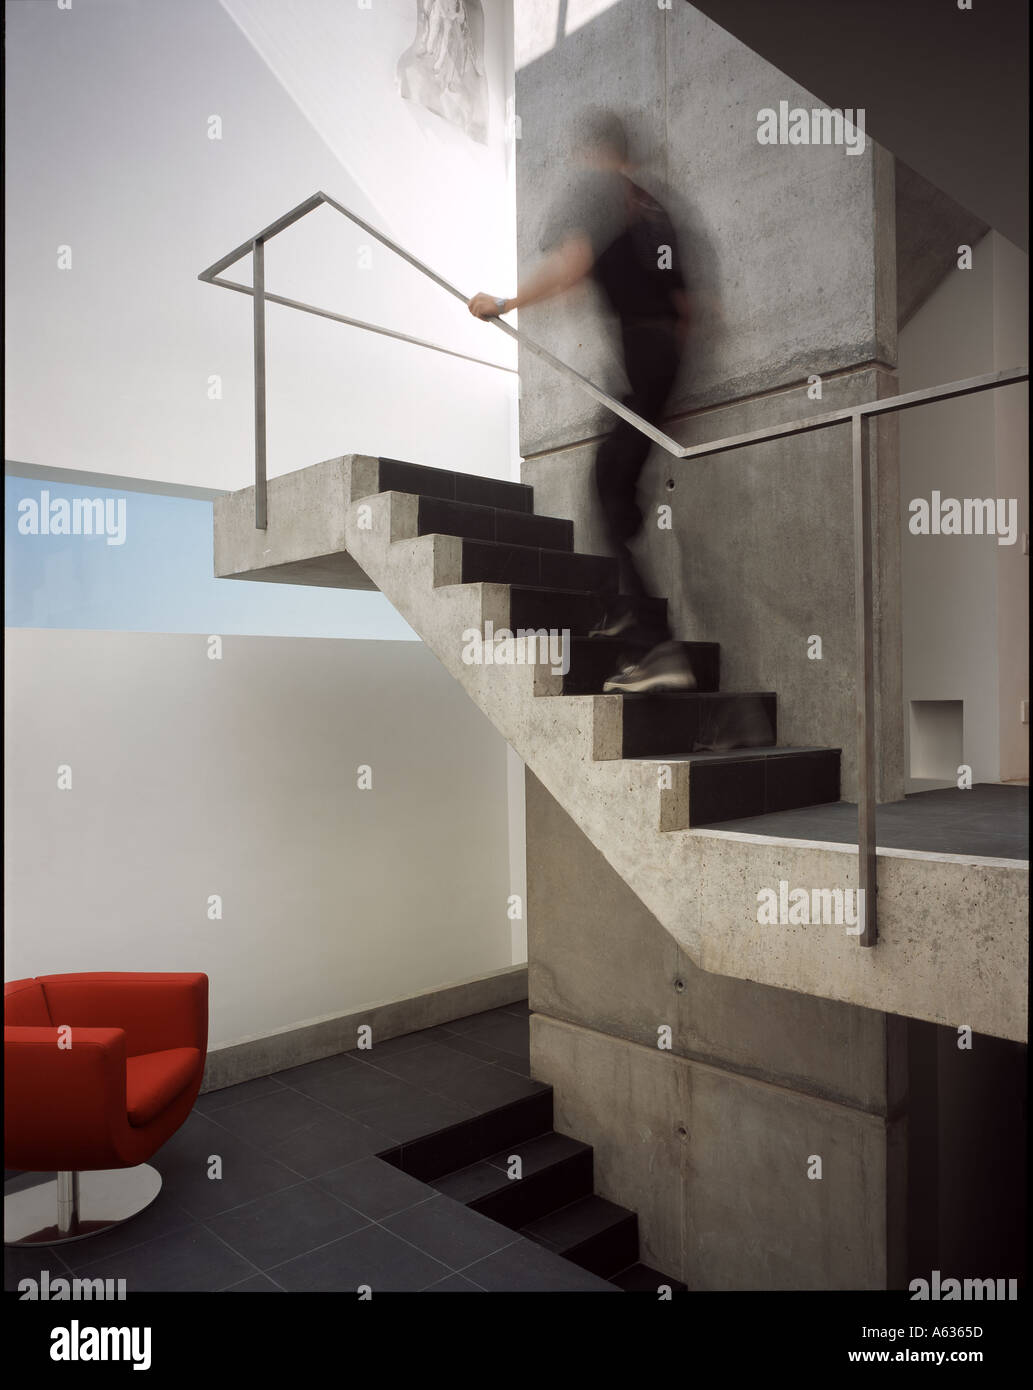 The Tall House Interior Of The Stair Well With Red Chair And Blurred Man On  The Stairs. Architect: Terry Pawson Architects